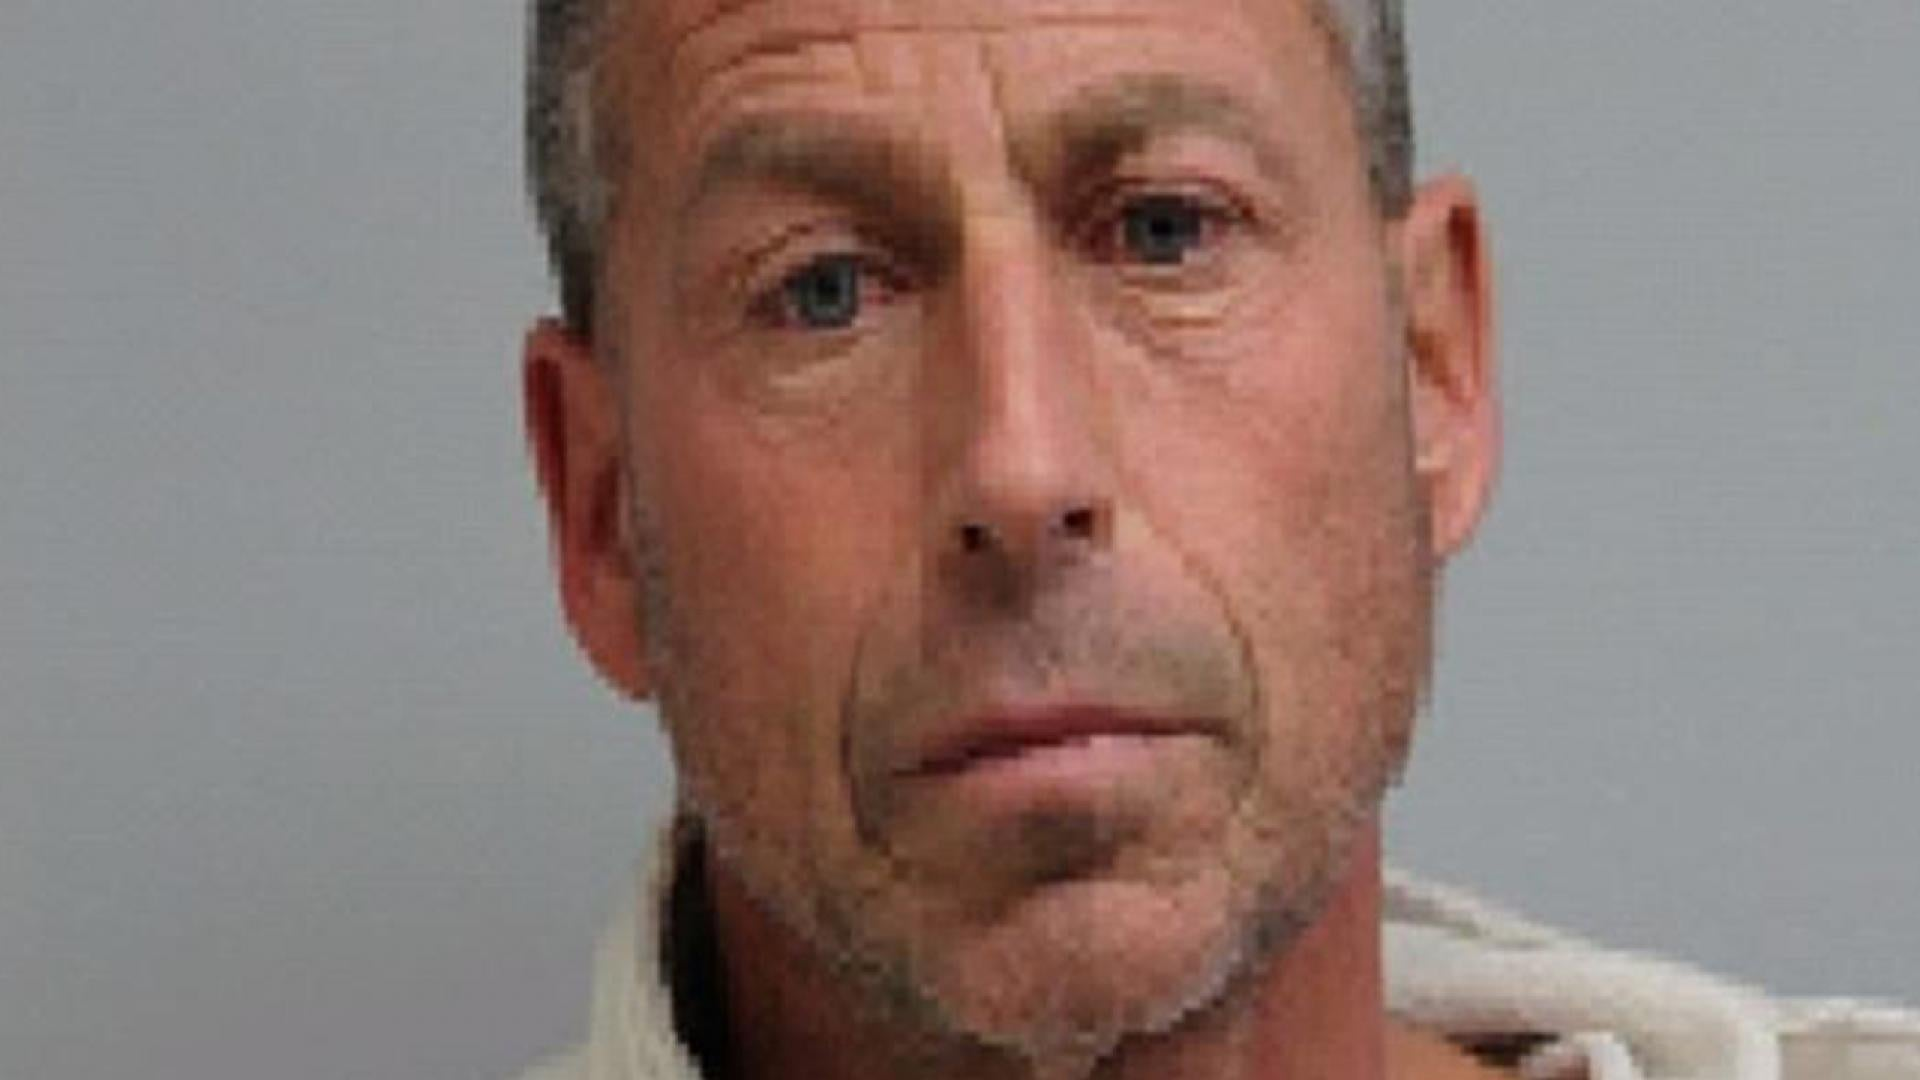 Erick Huska allegedly closed the lid of his hot tub on his wife.